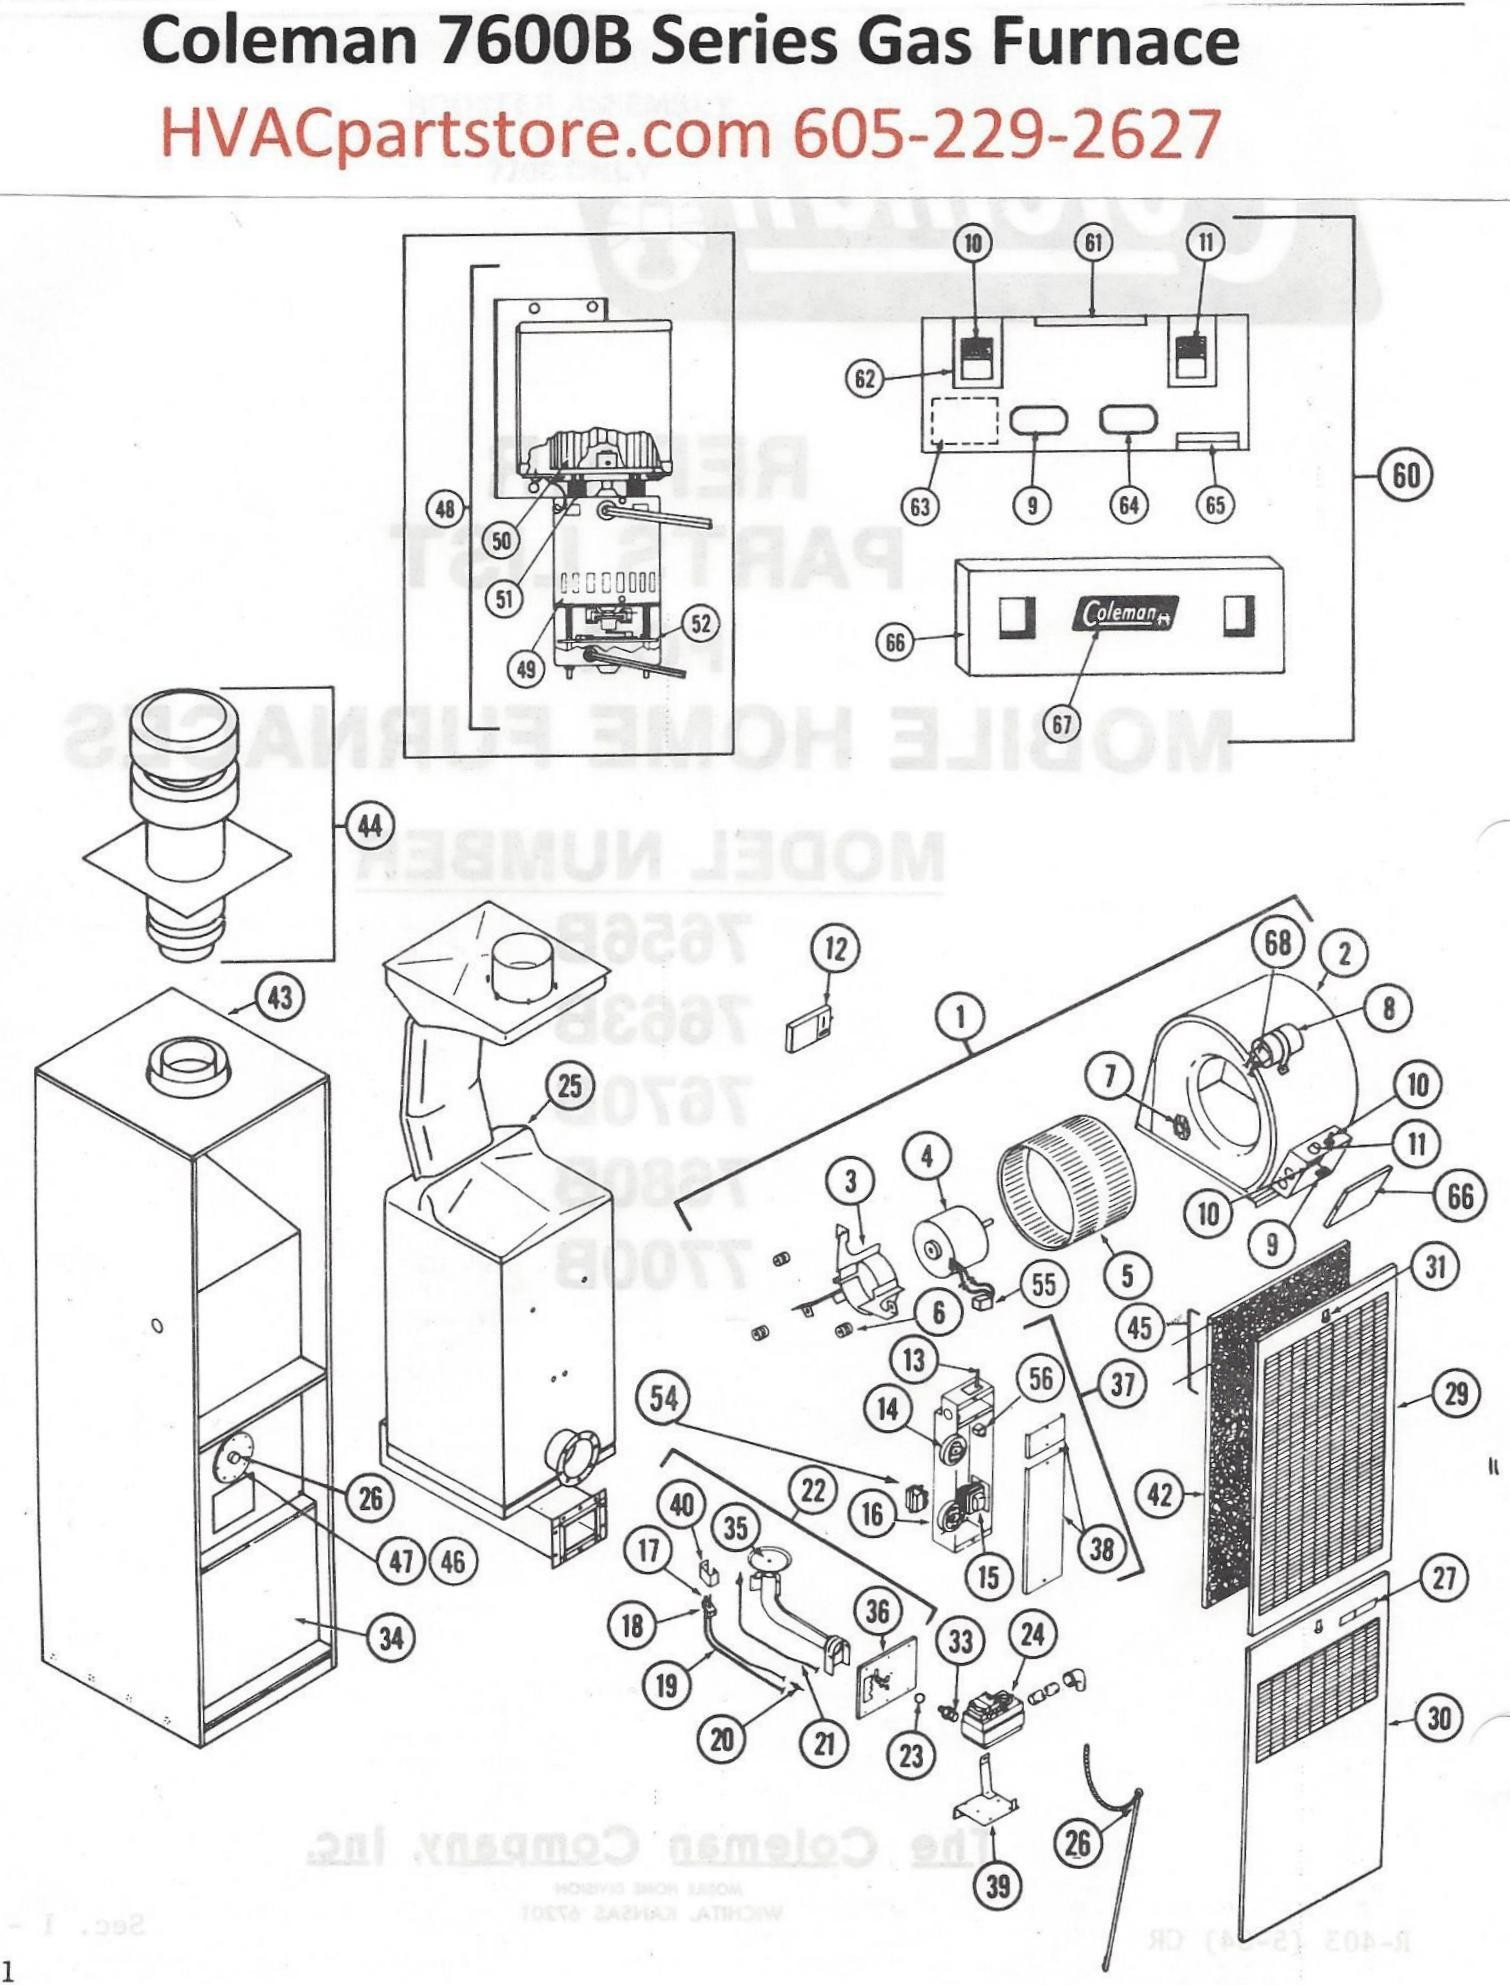 Coleman Stove Parts Diagram Gas Furnace Control Wiring Diagram Best 7663b856 Coleman Gas Furnace Of Coleman Stove Parts Diagram